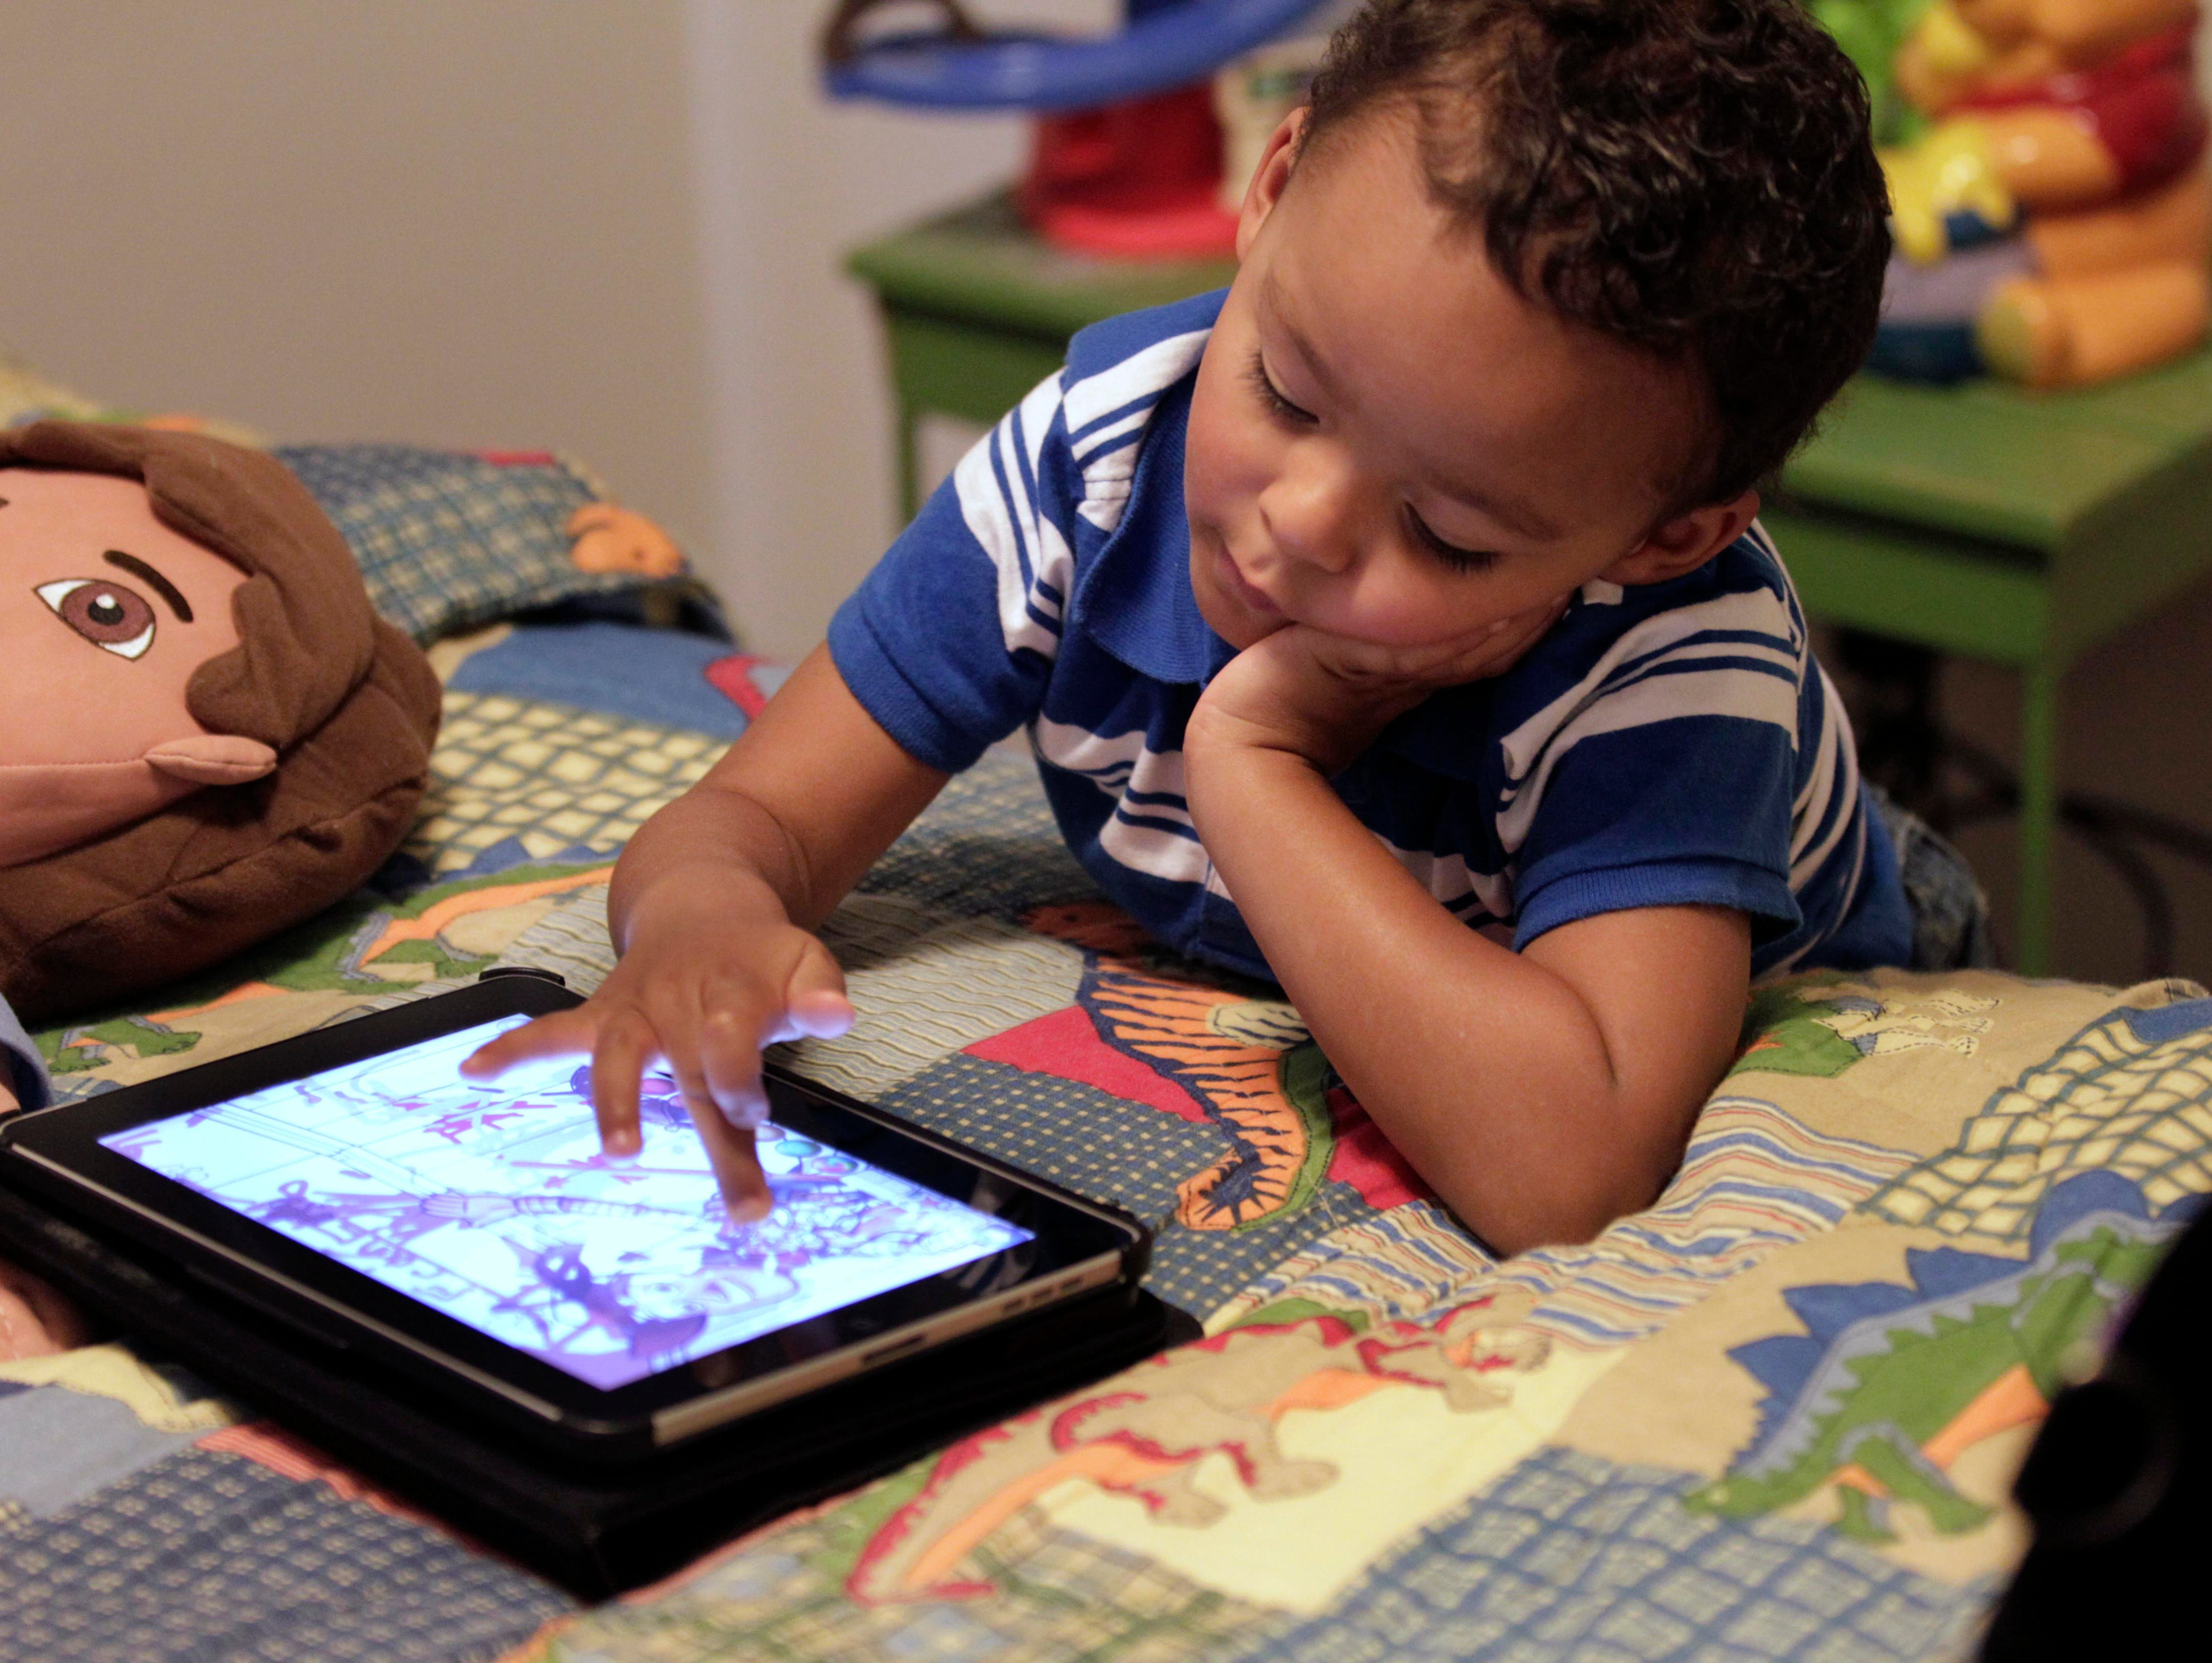 Frankie Thevenot, then 3, plays with an iPad in his bedroom at his home in Metairie, La., in 2011.